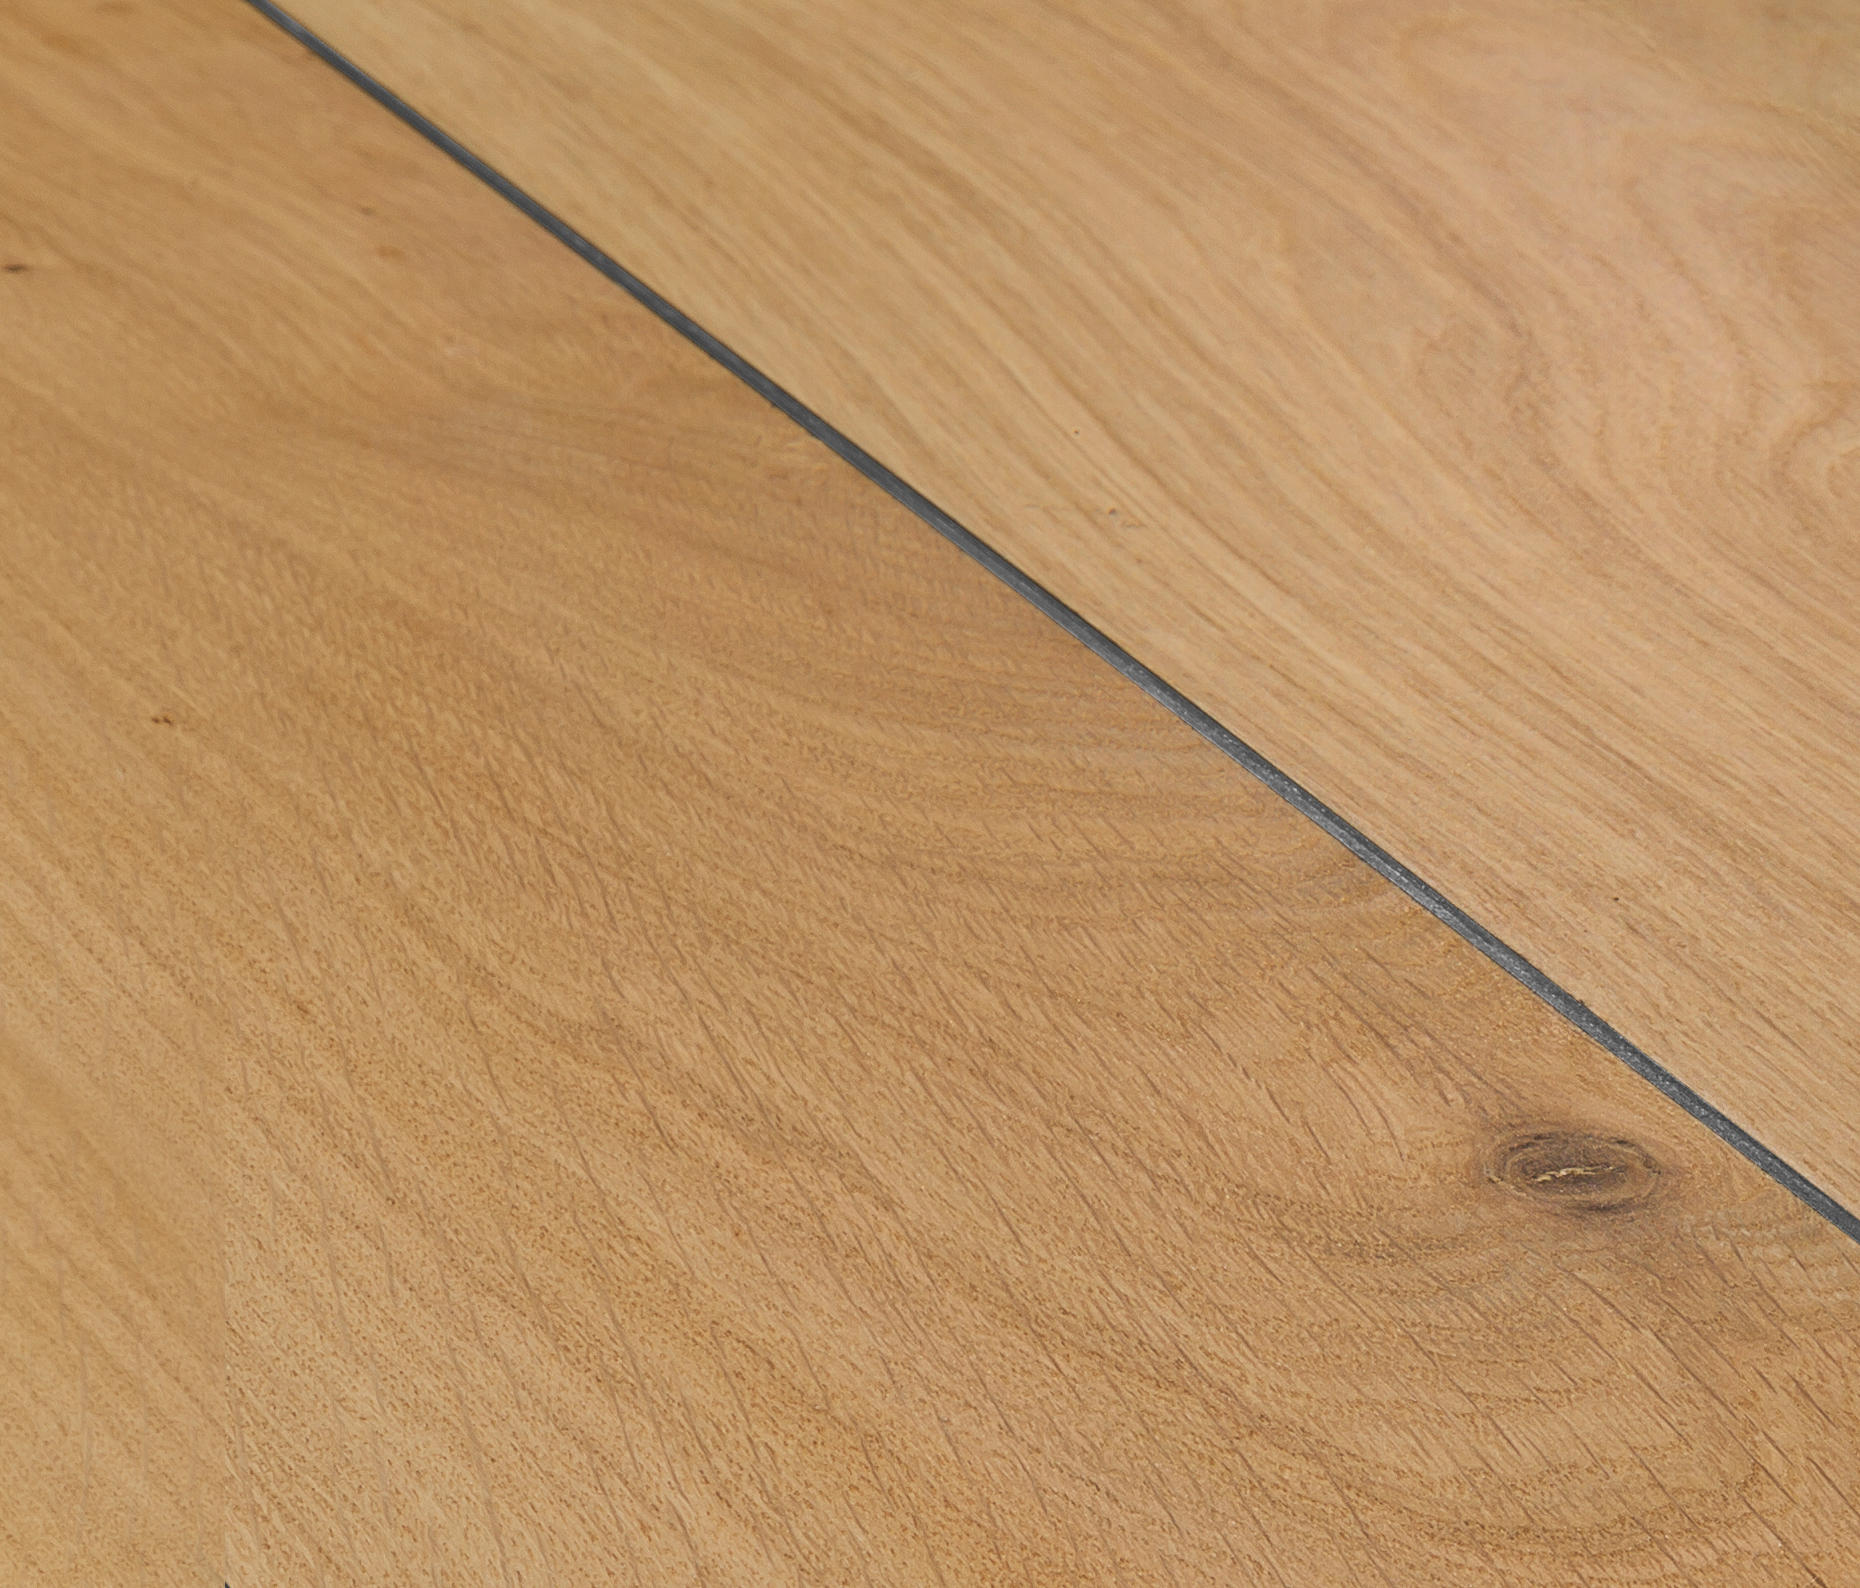 HYDRO PARQUET   NATURE   Wood flooring from h    ma   Architonic Hydro Parquet   Nature by h    ma   Wood flooring